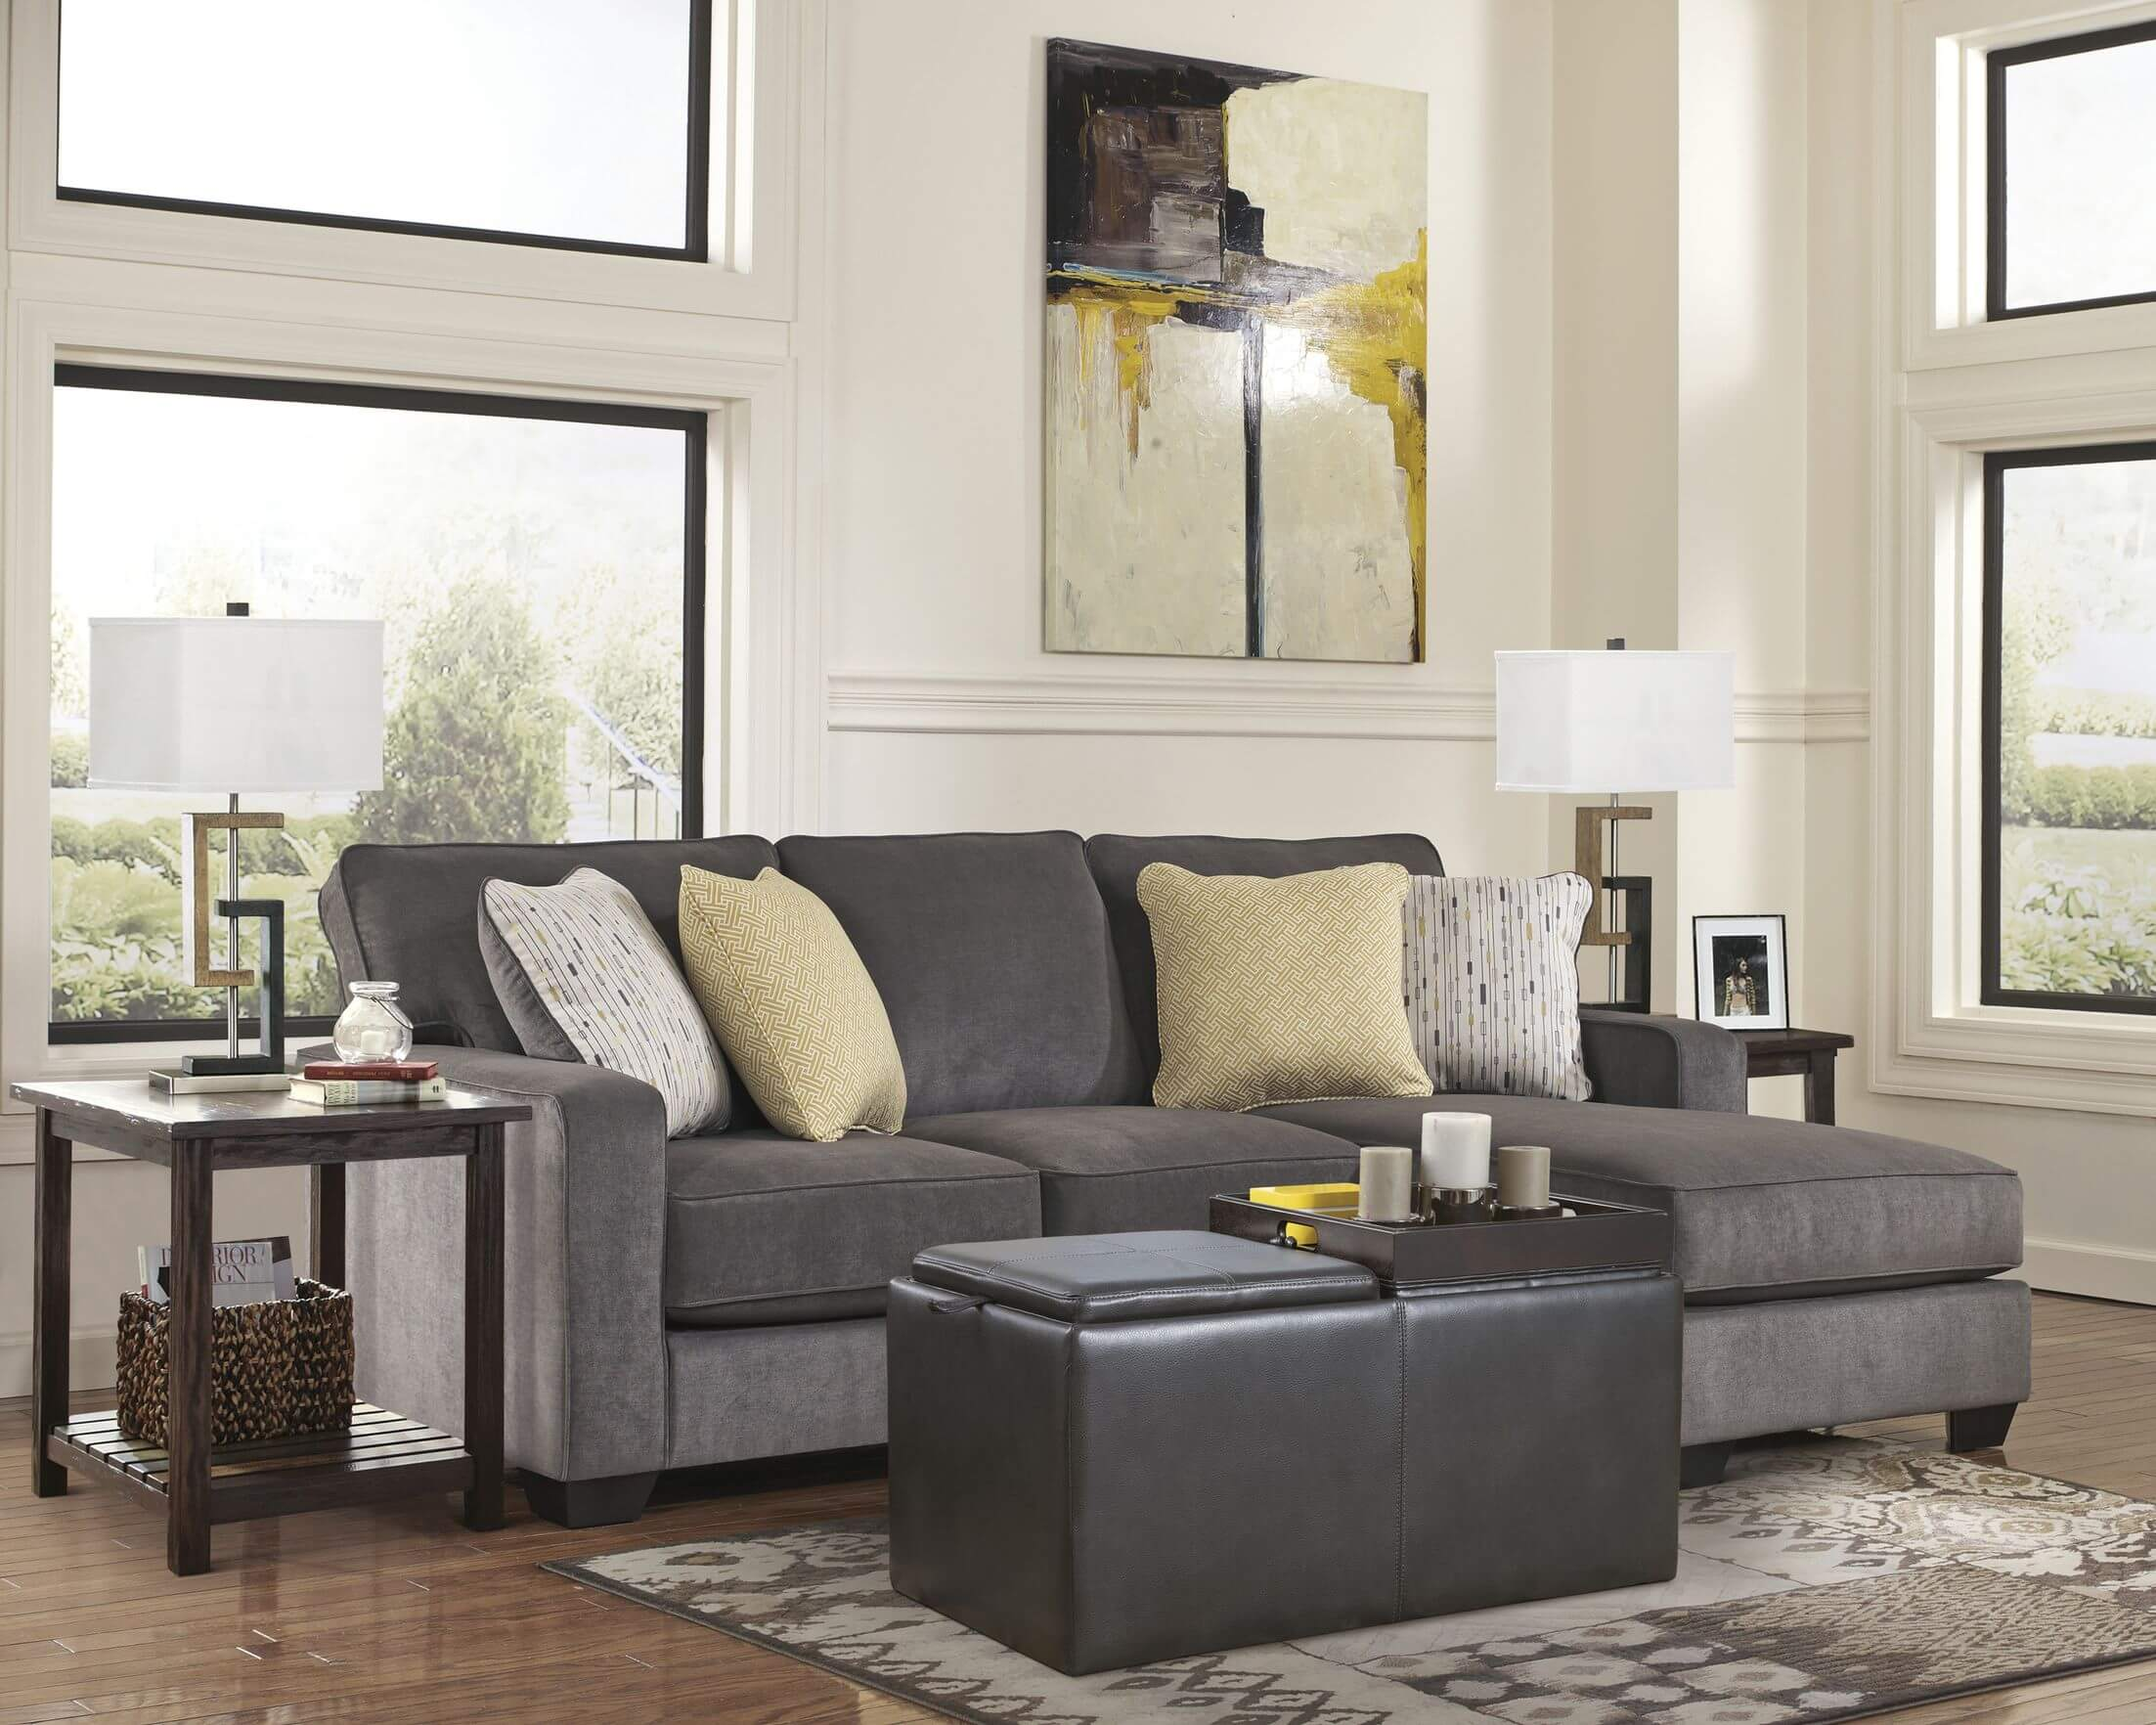 of yourself sectional room sofa roundhill living couch leather photos and black get your grey enhance a furniture